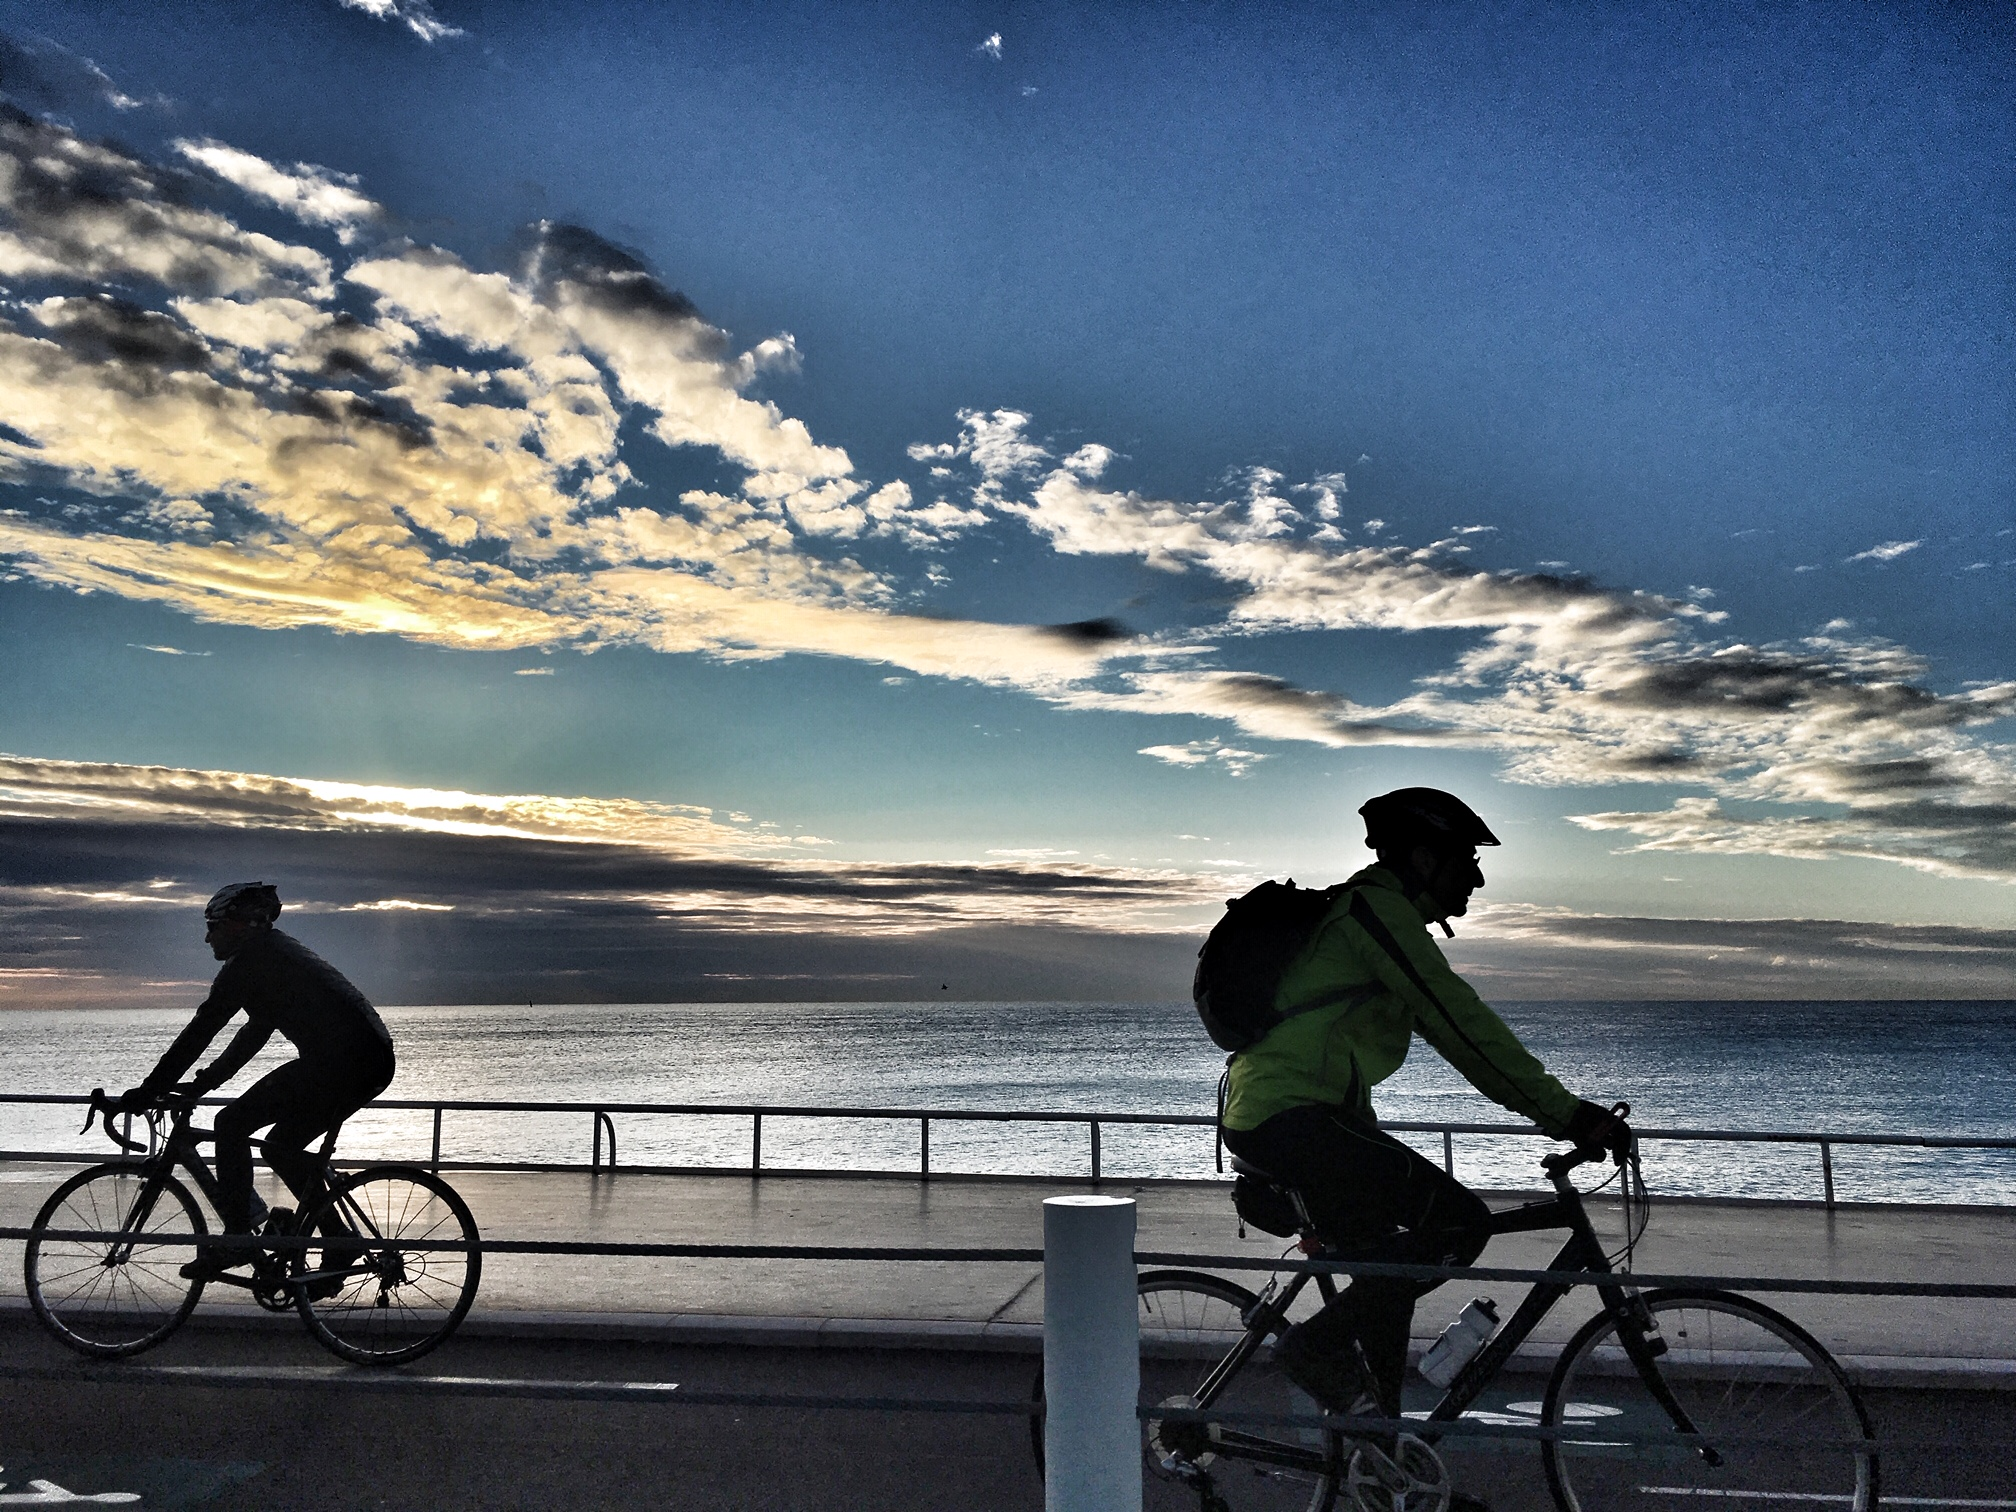 Visit Nice by bike - Credit: Summer Hotel group